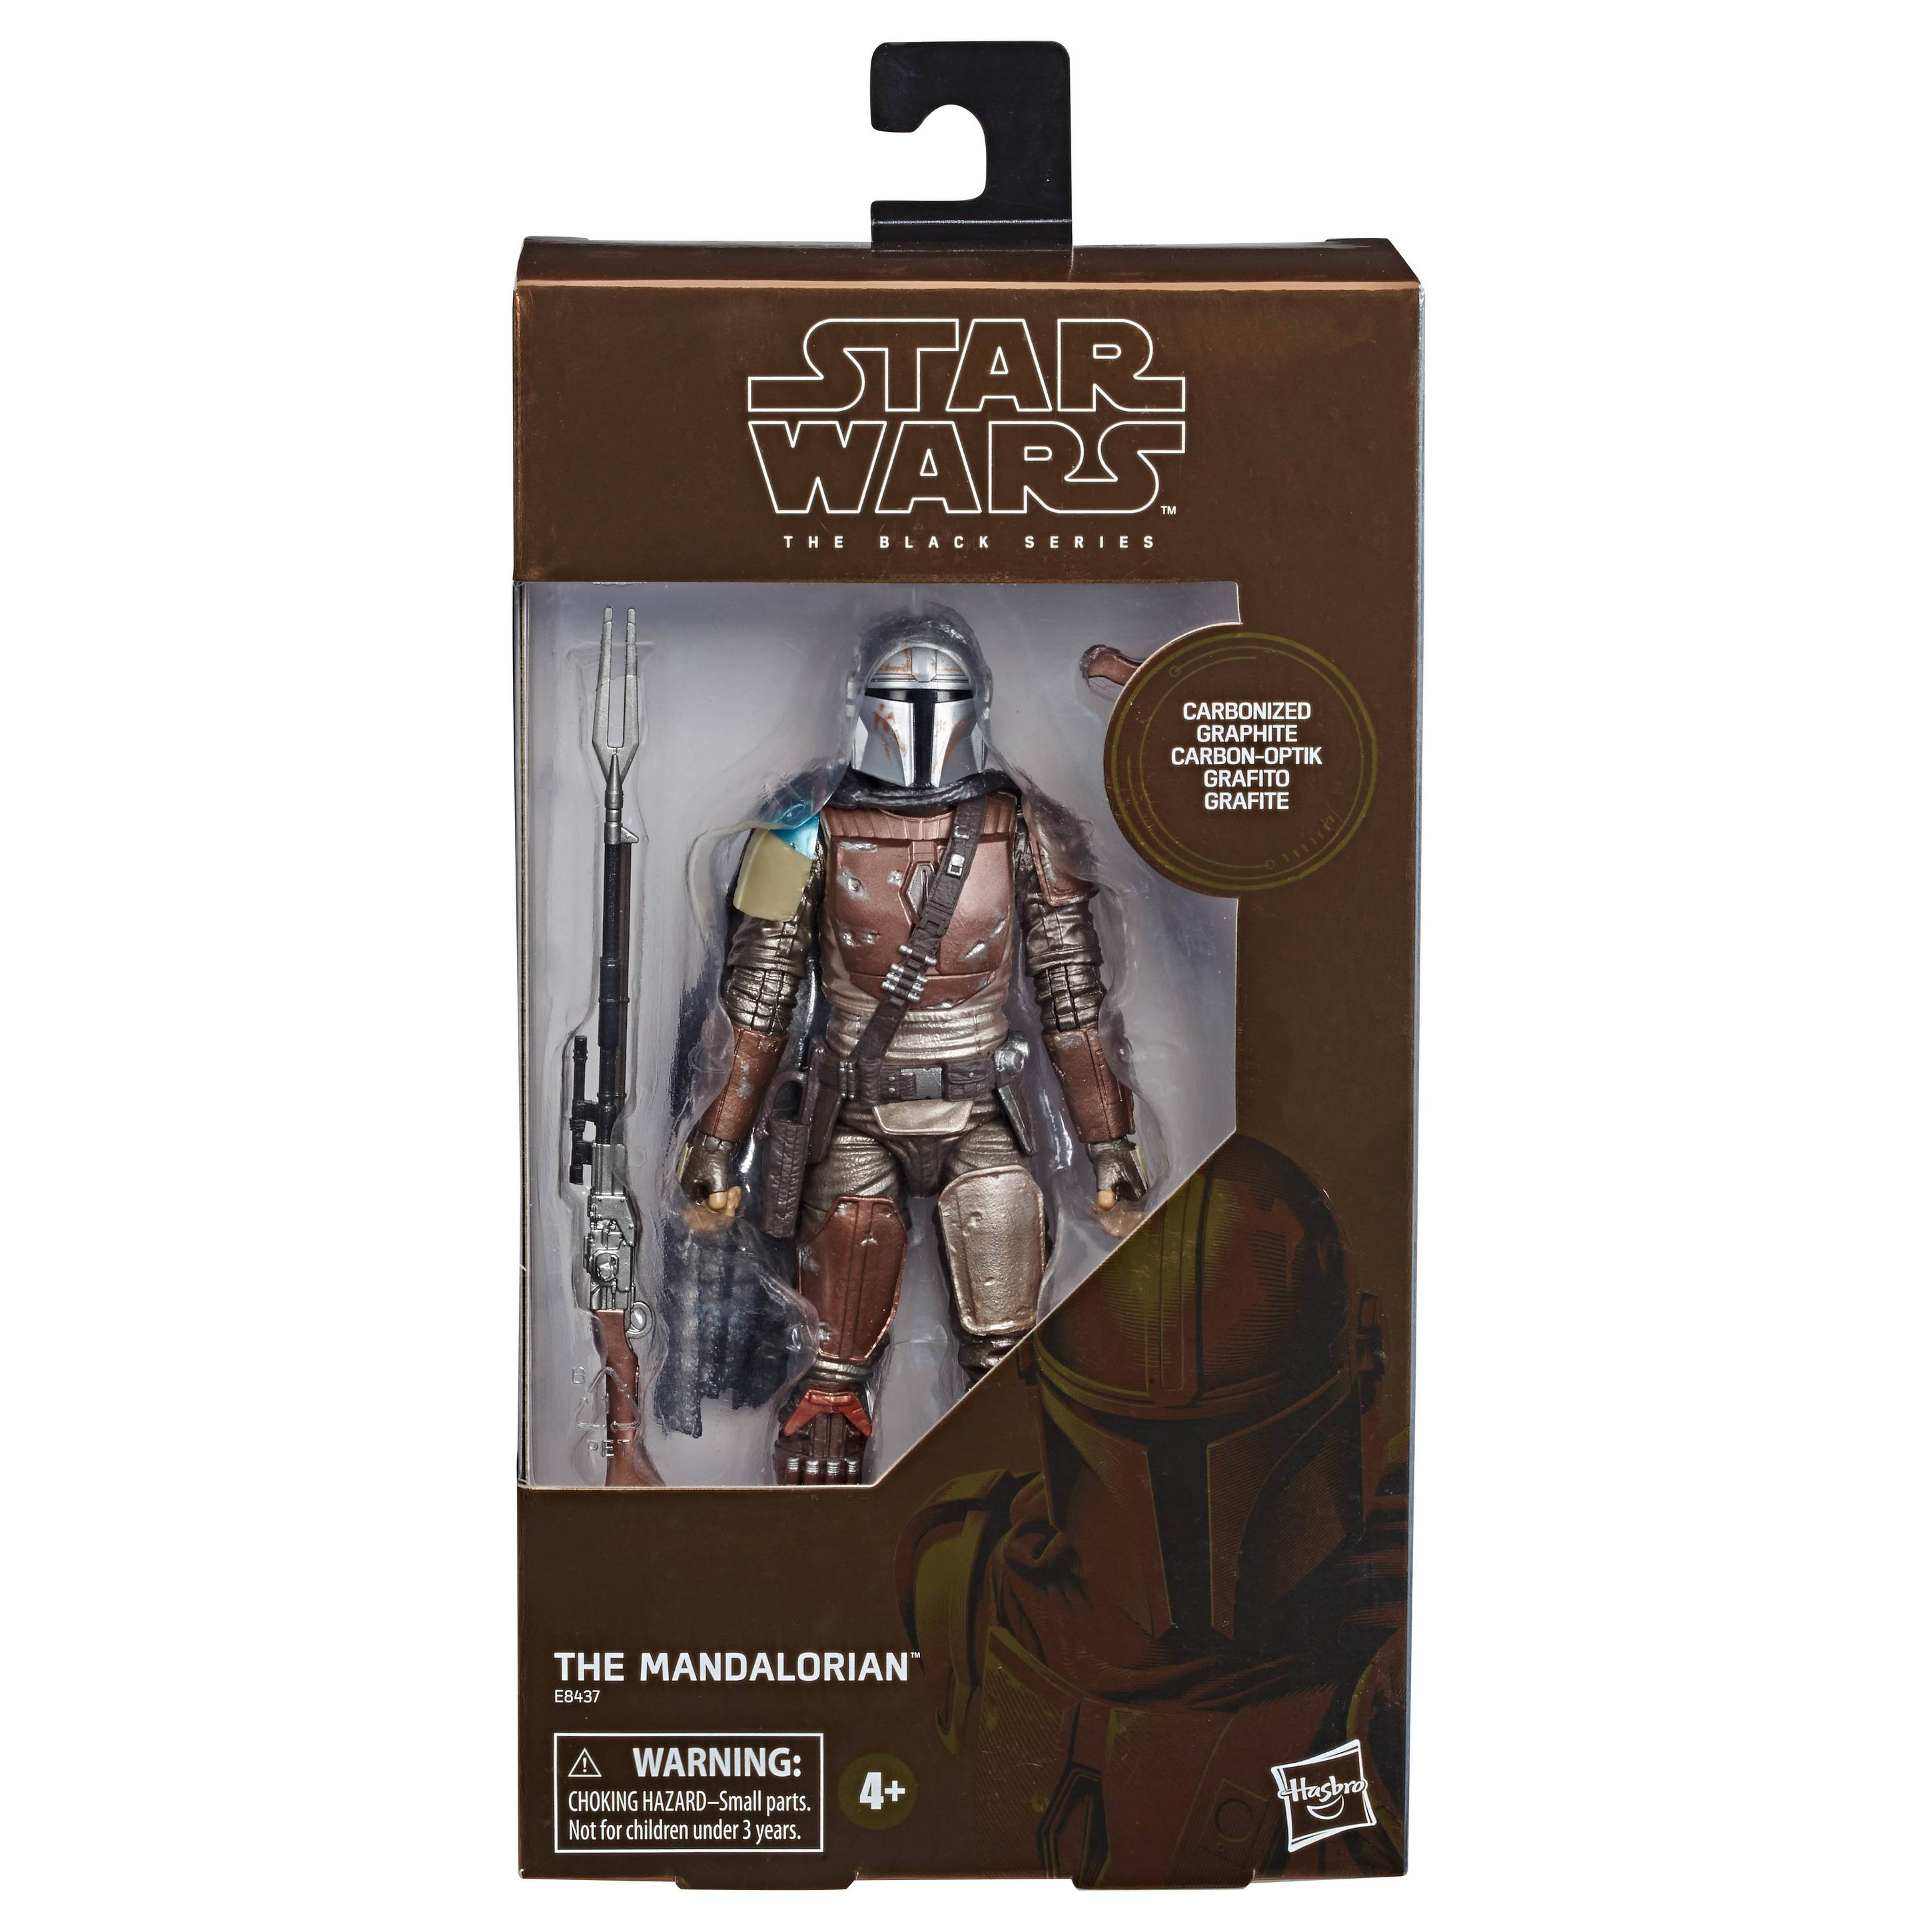 STAR-WARS-THE-BLACK-SERIES-6-INCH-THE-MANDALORIAN-CARBONIZED-COLLECTION-Figure-in-pck.jpg